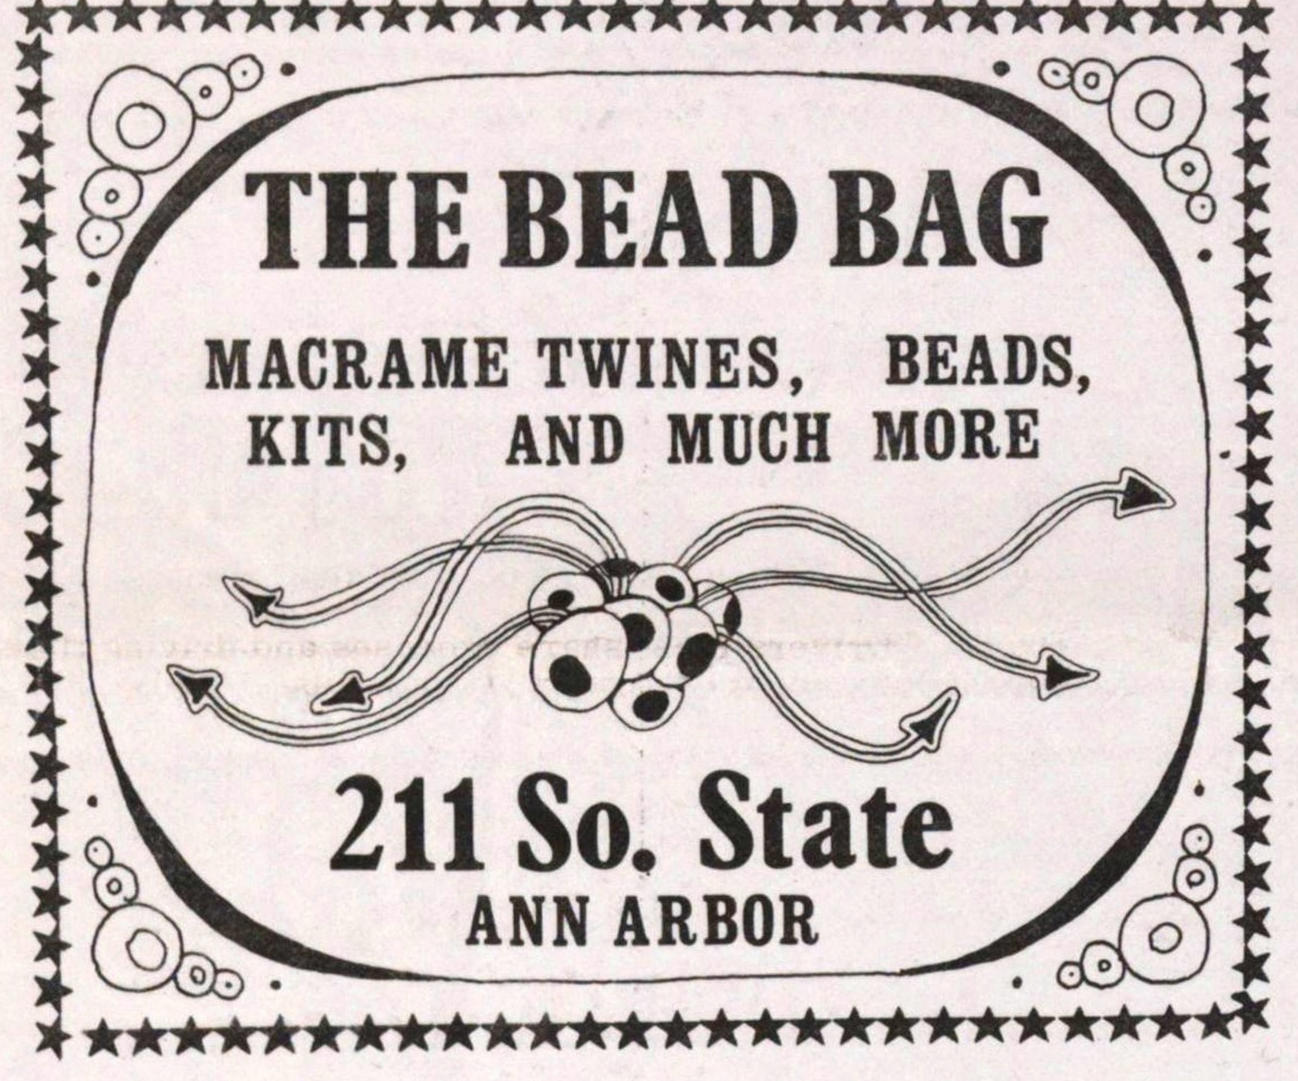 The Bead Bag image